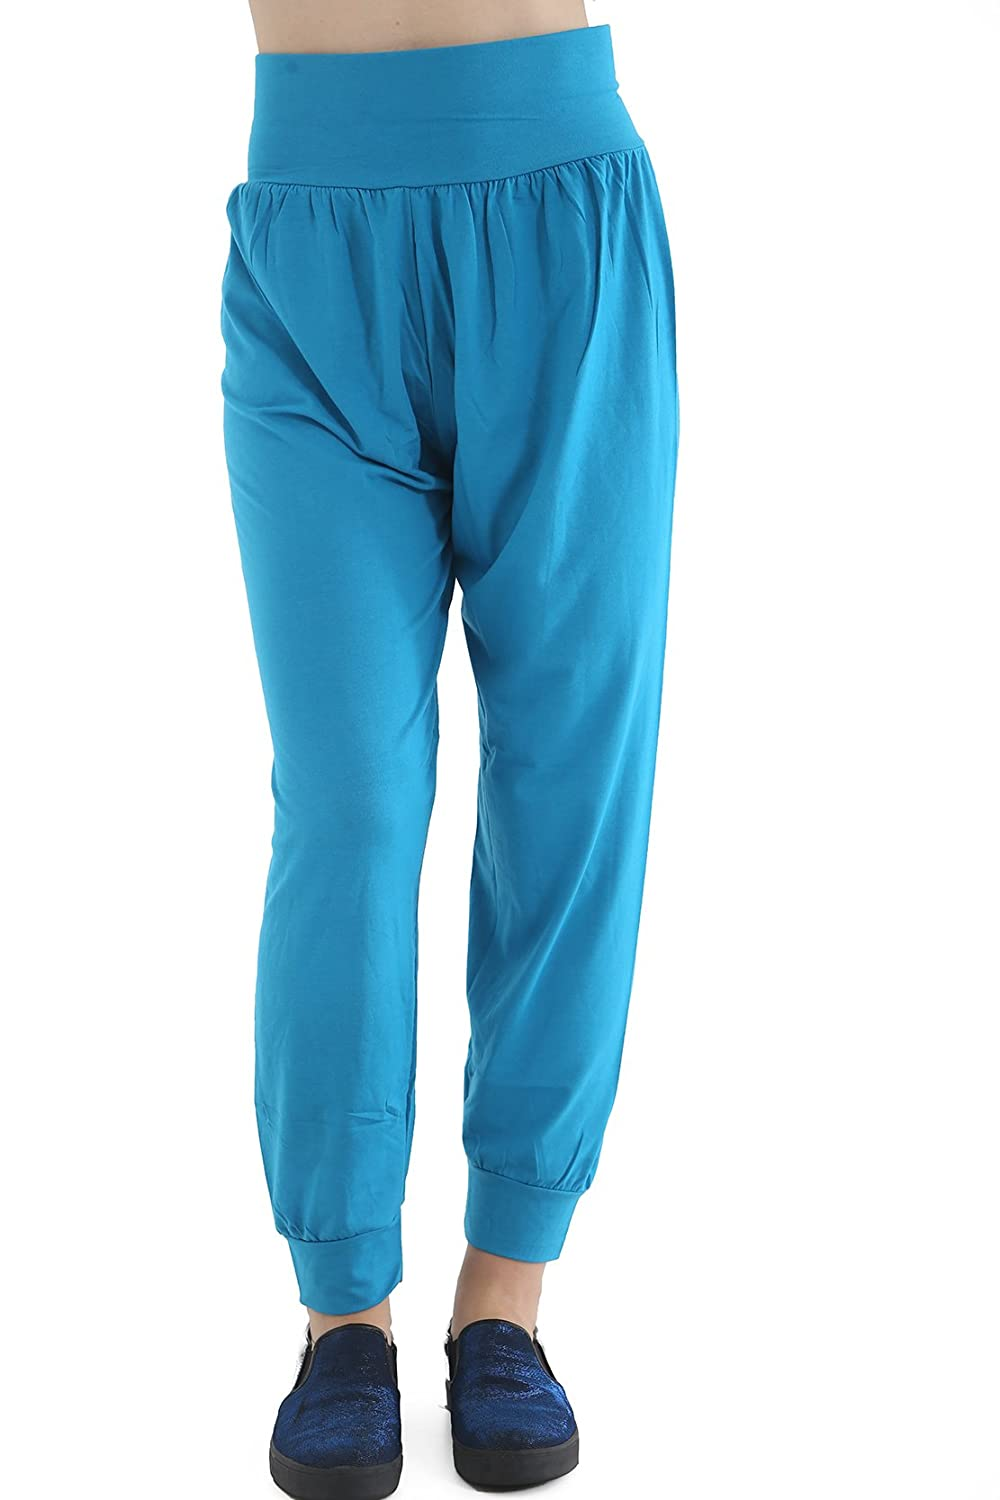 7-8, TURQUOISE GIRLS KIDS HAREM TROUSER ALI BABA HAREM LEGGINGS PANTS SIZE 4 TO 13 YEARS